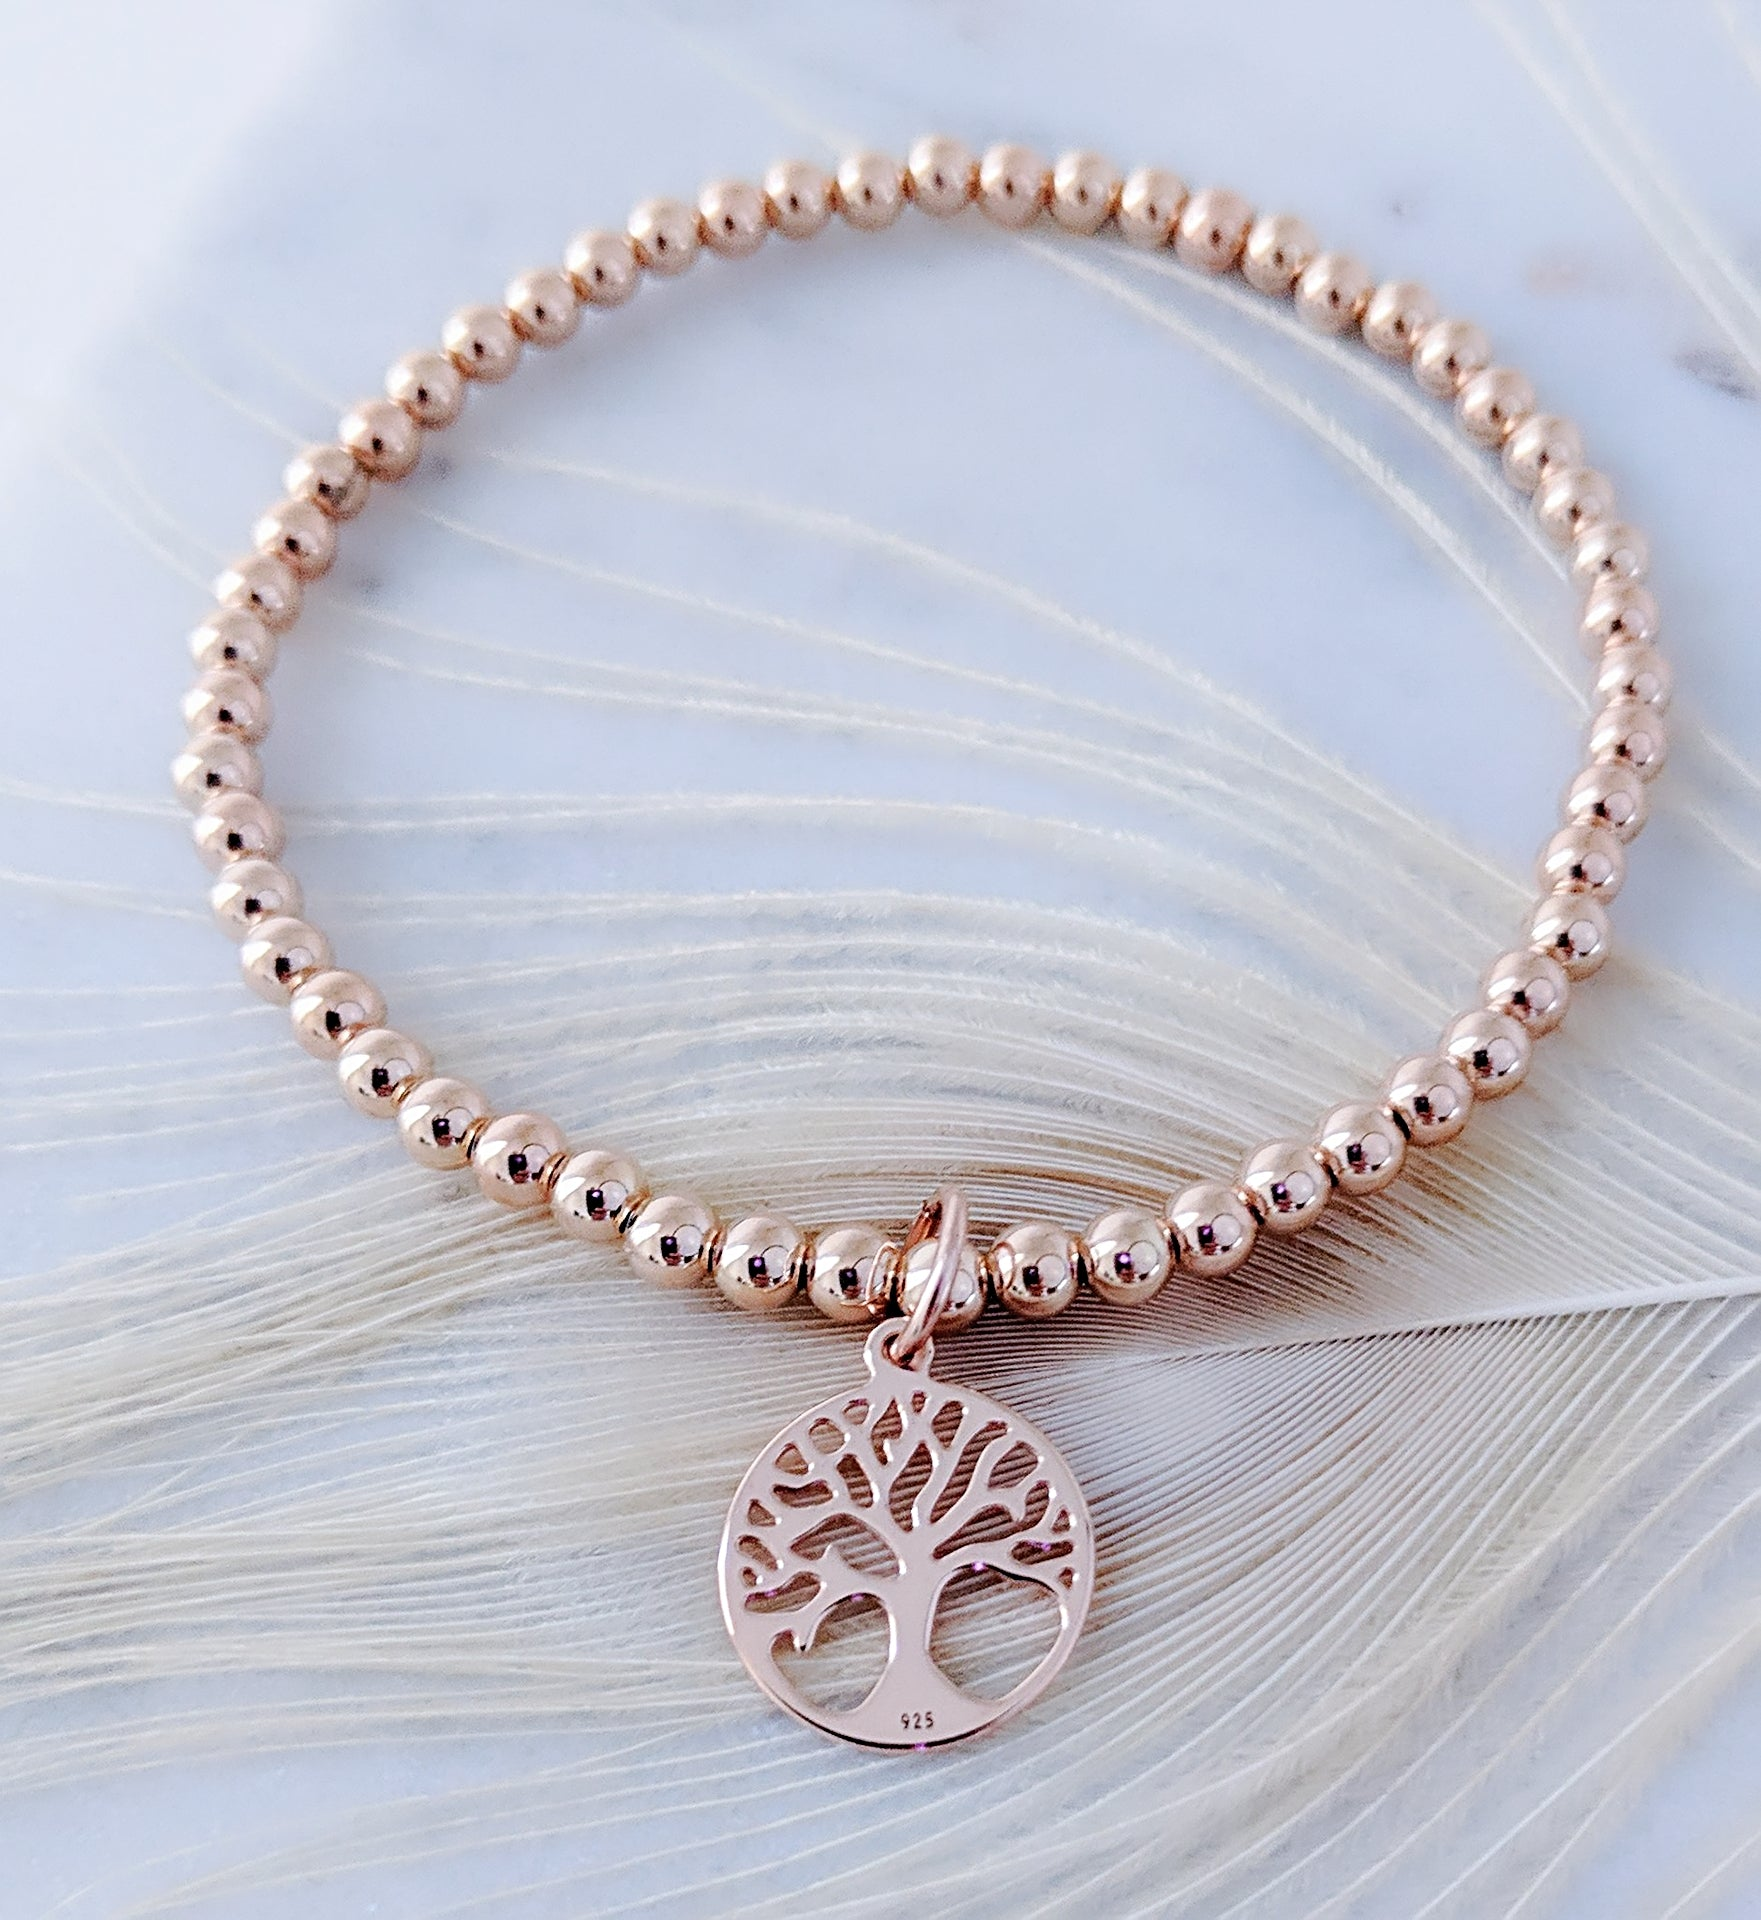 b84f00e5e85 Rose Gold Tree of Life Charm Bracelet - Jewelz by Angie